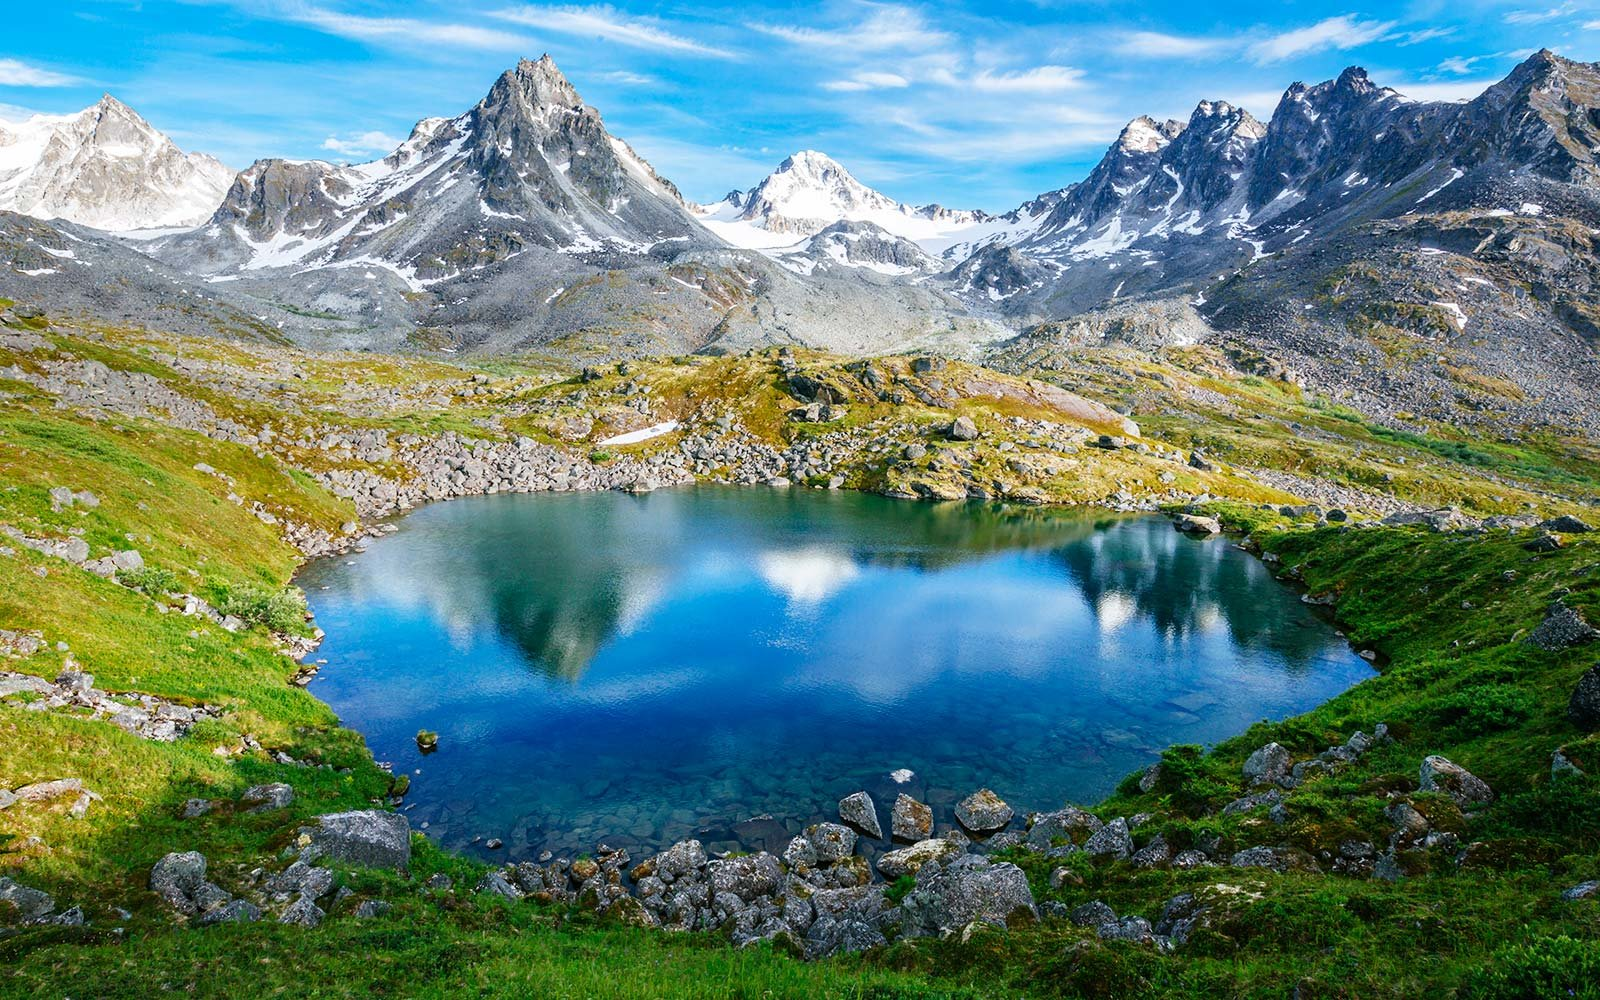 You Can Stay in a Picturesque Cabin in the Alaska Mountains for Free. You Can Stay in a Picturesque Cabin in the Alaskan Mountains for